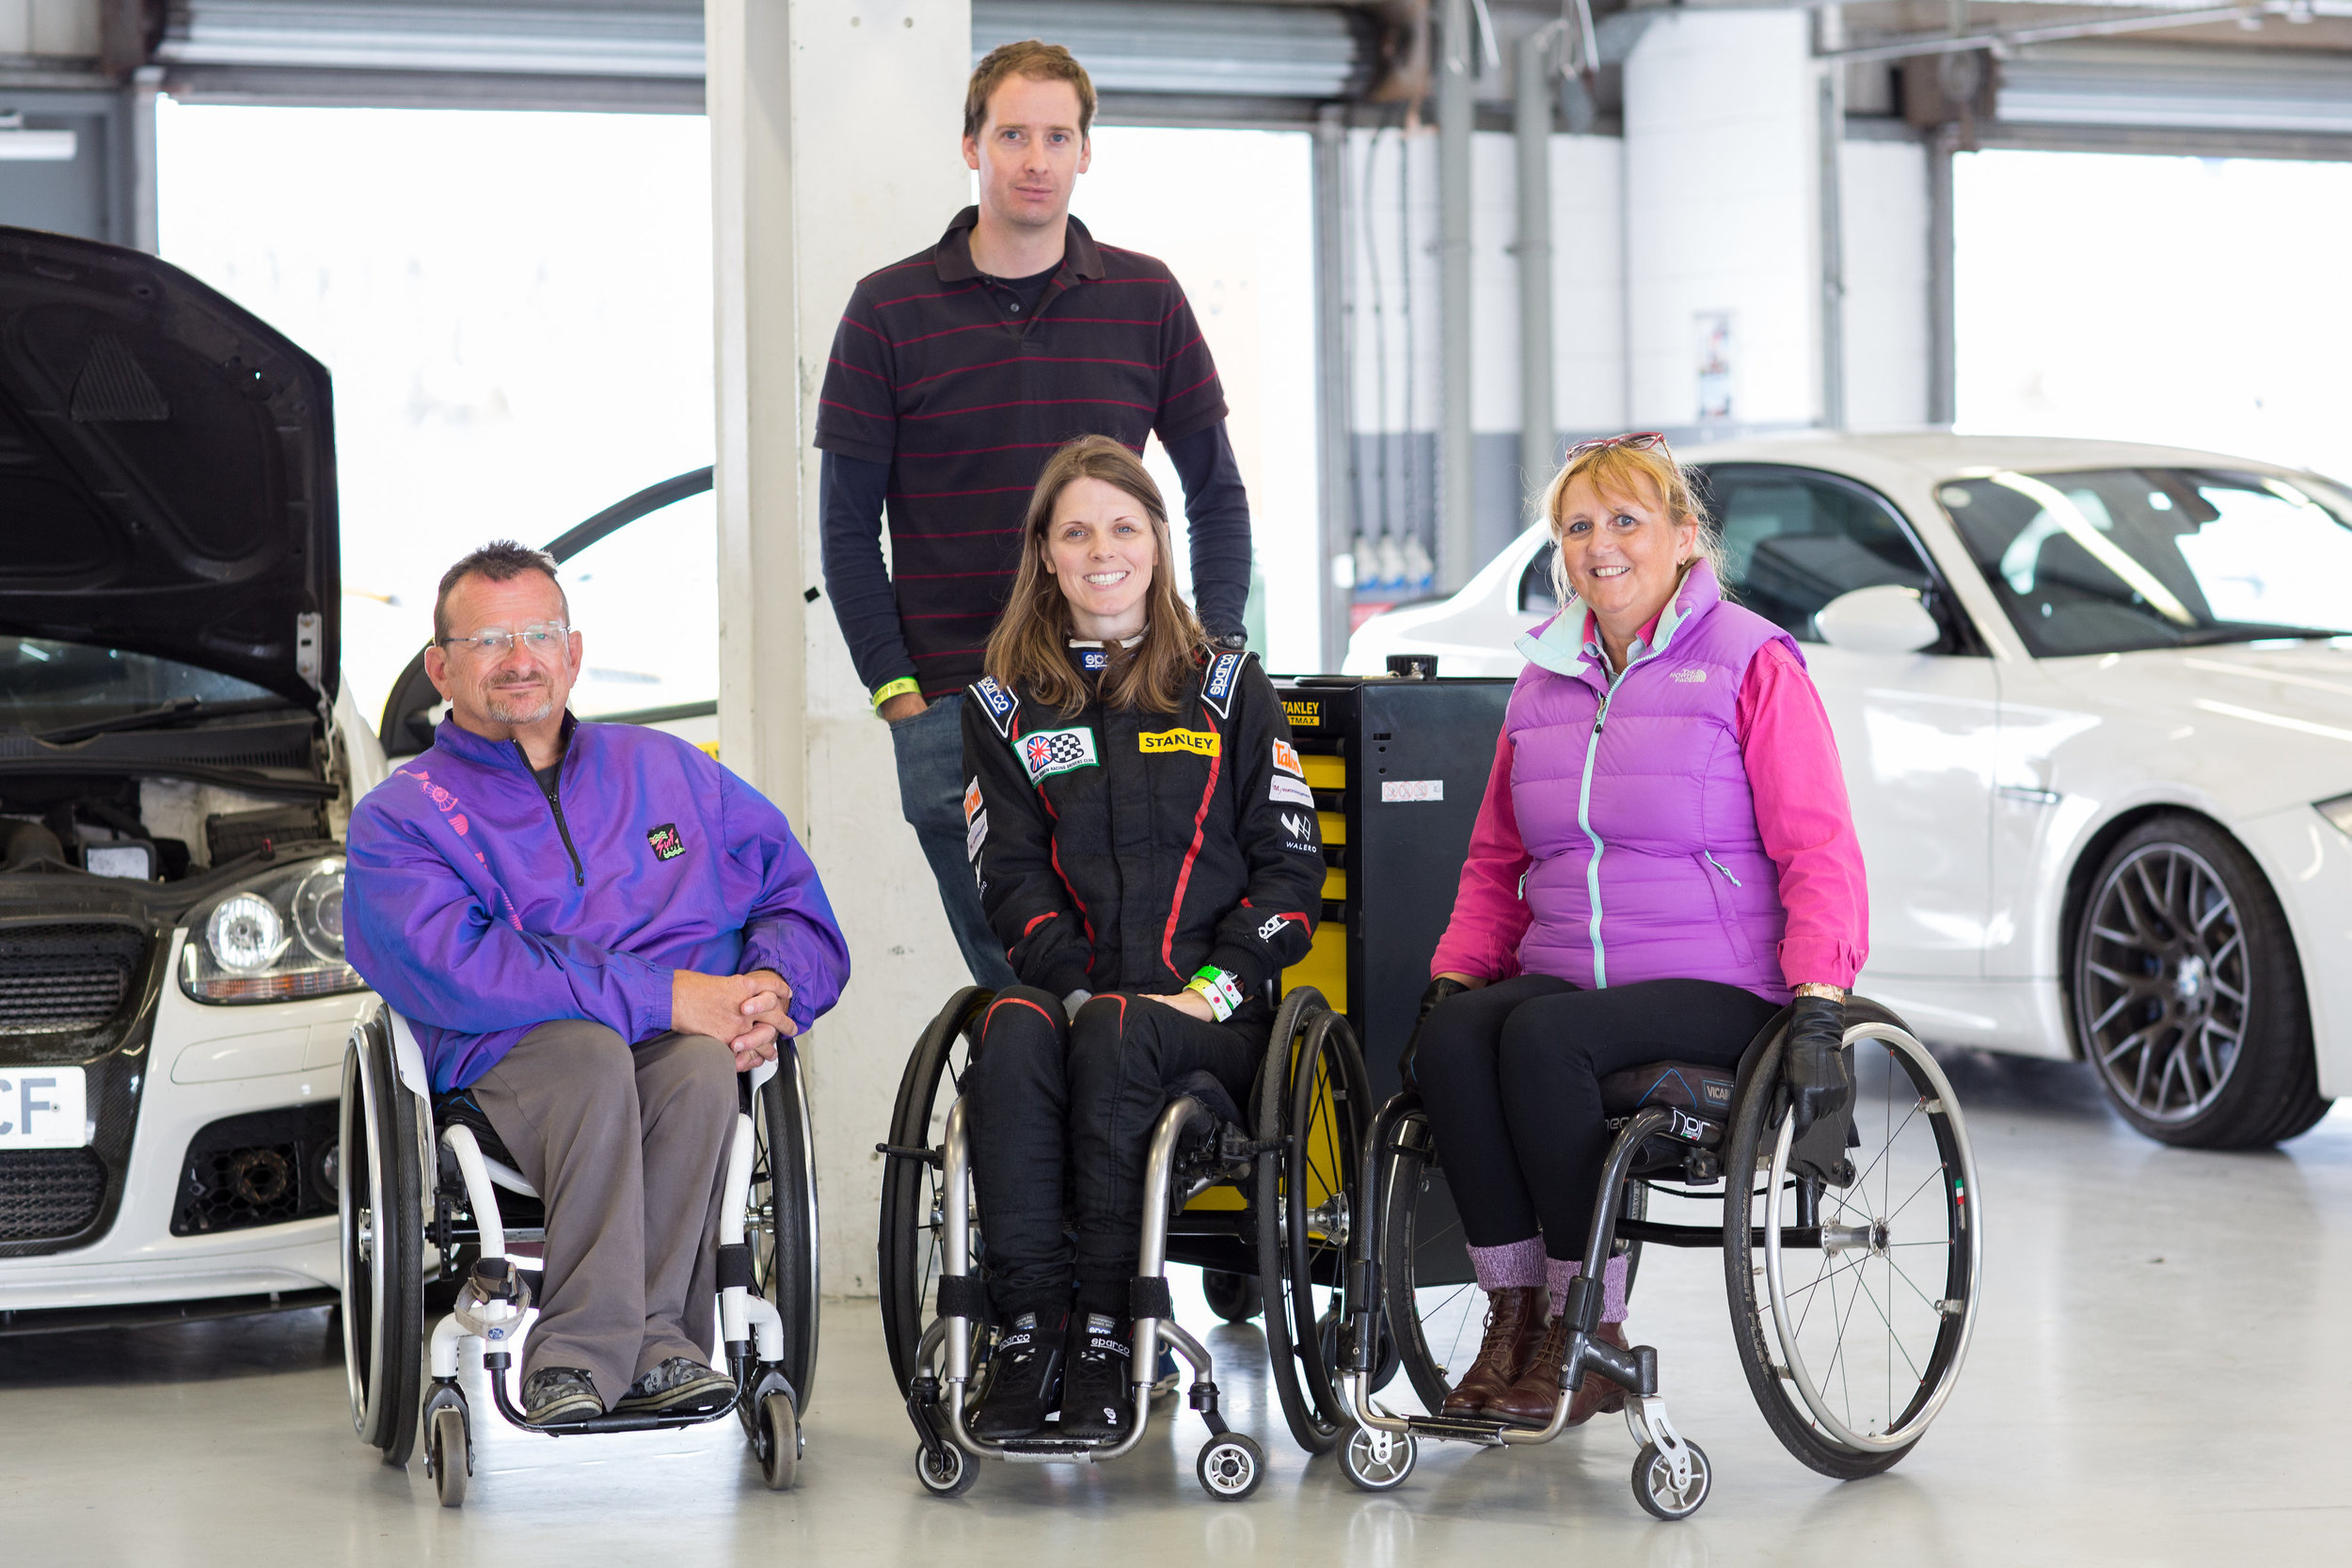 Spinal Track - Nathalie co-founded Spinal Track, a charity enabling disabled drivers to enjoy track days and rally experiences...